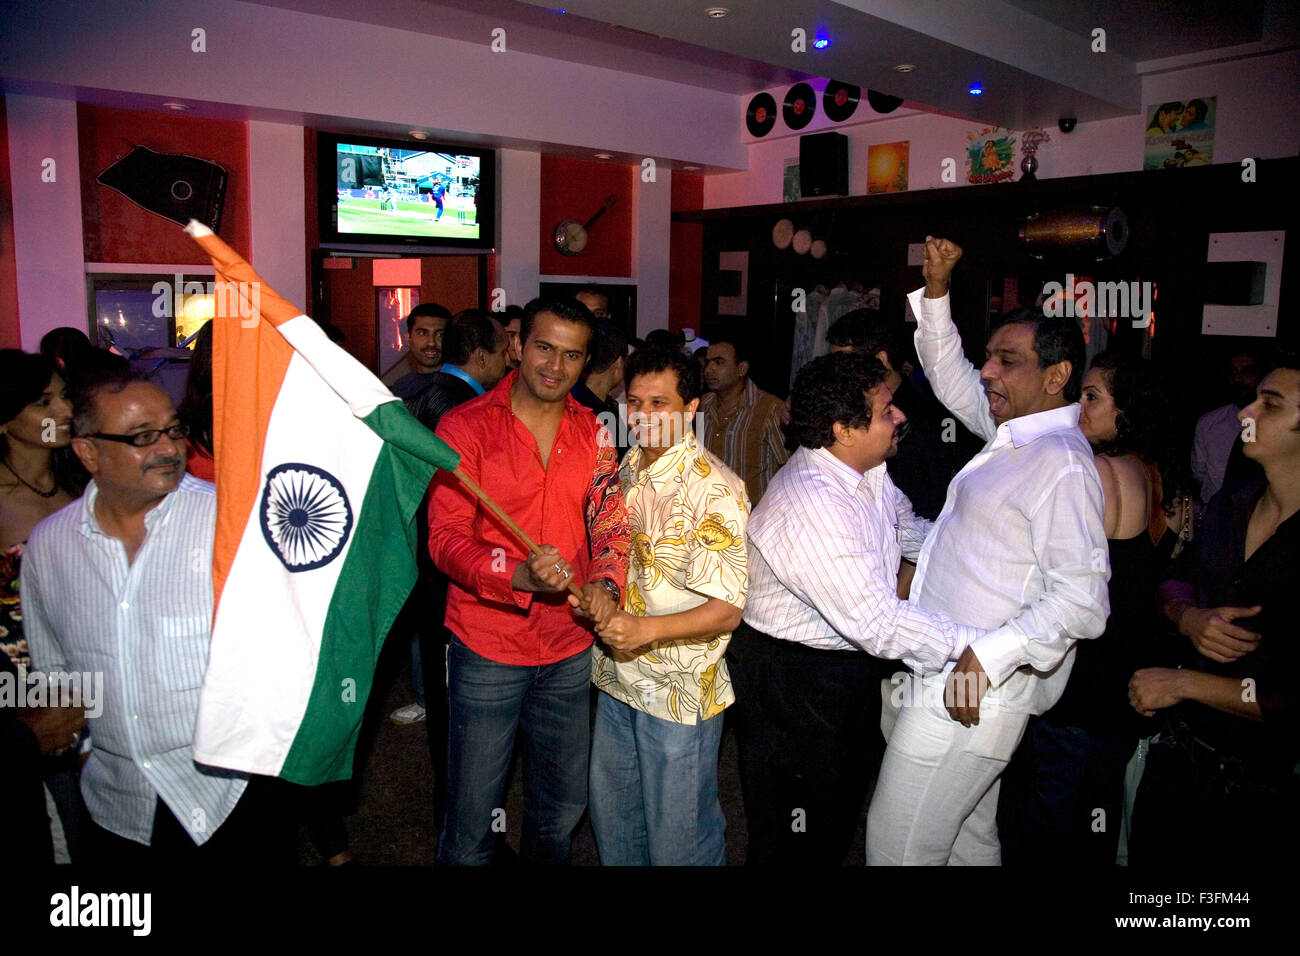 People celebrating India wins cricket match world cup 20 20 v/s Pakistan - Stock Image